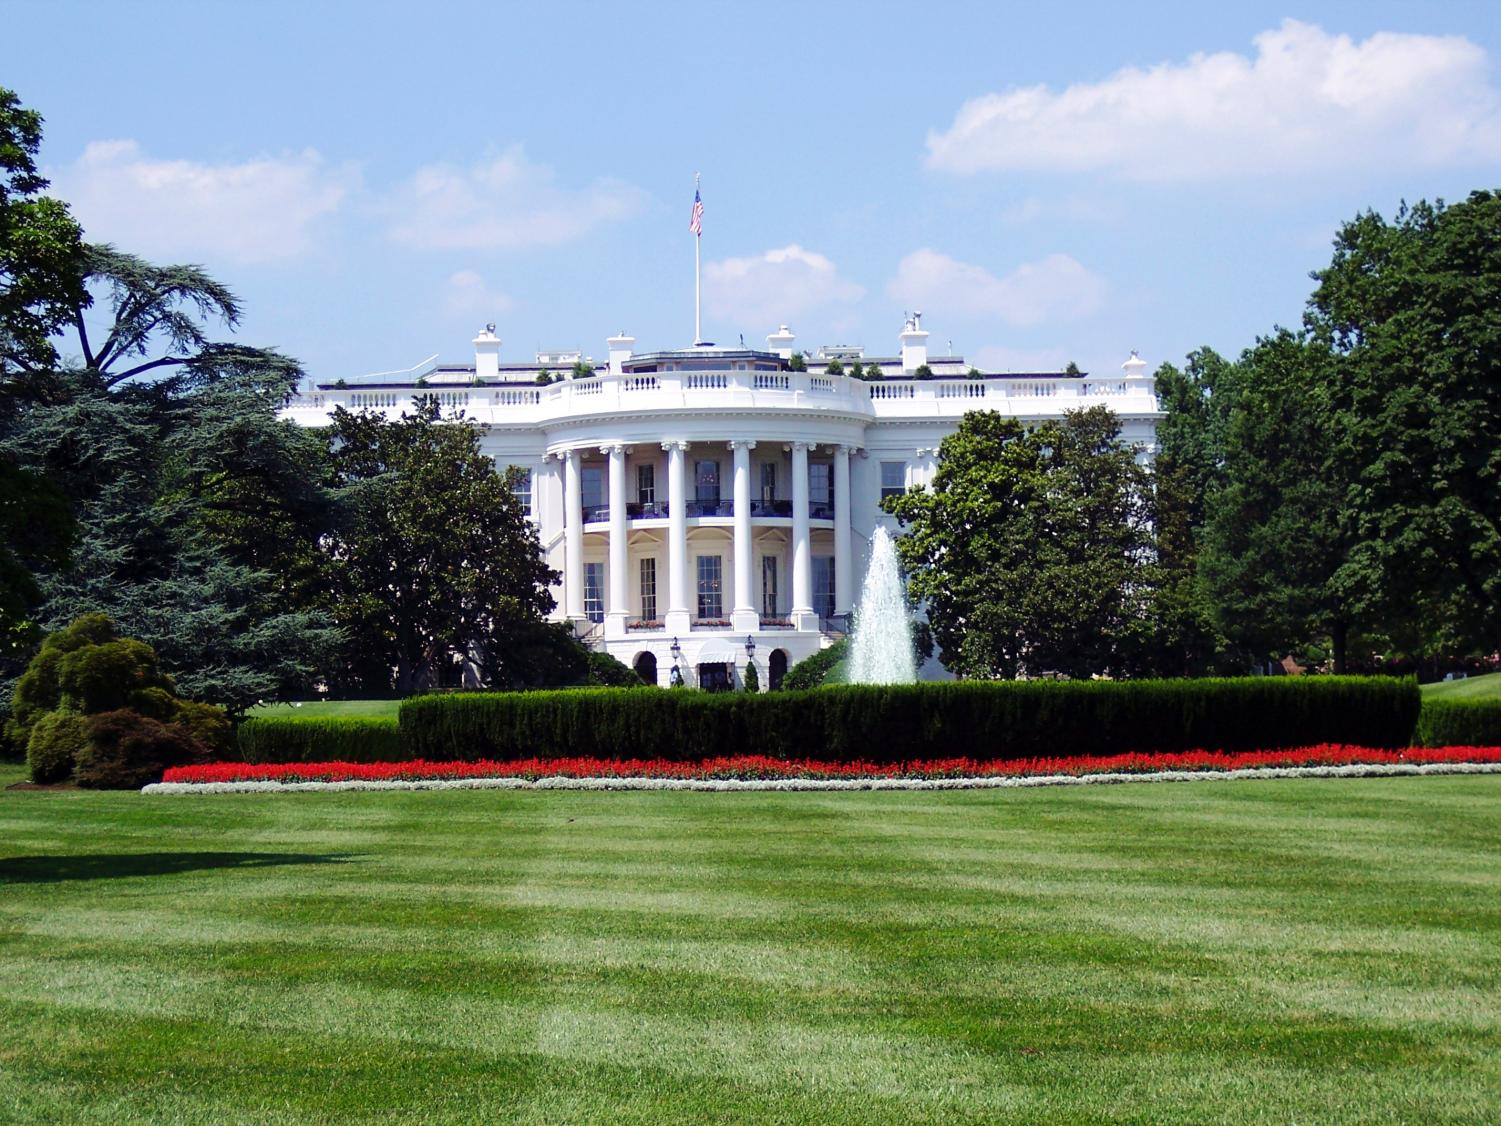 The White House, home of the Leader of the Free World and his Twitter account.